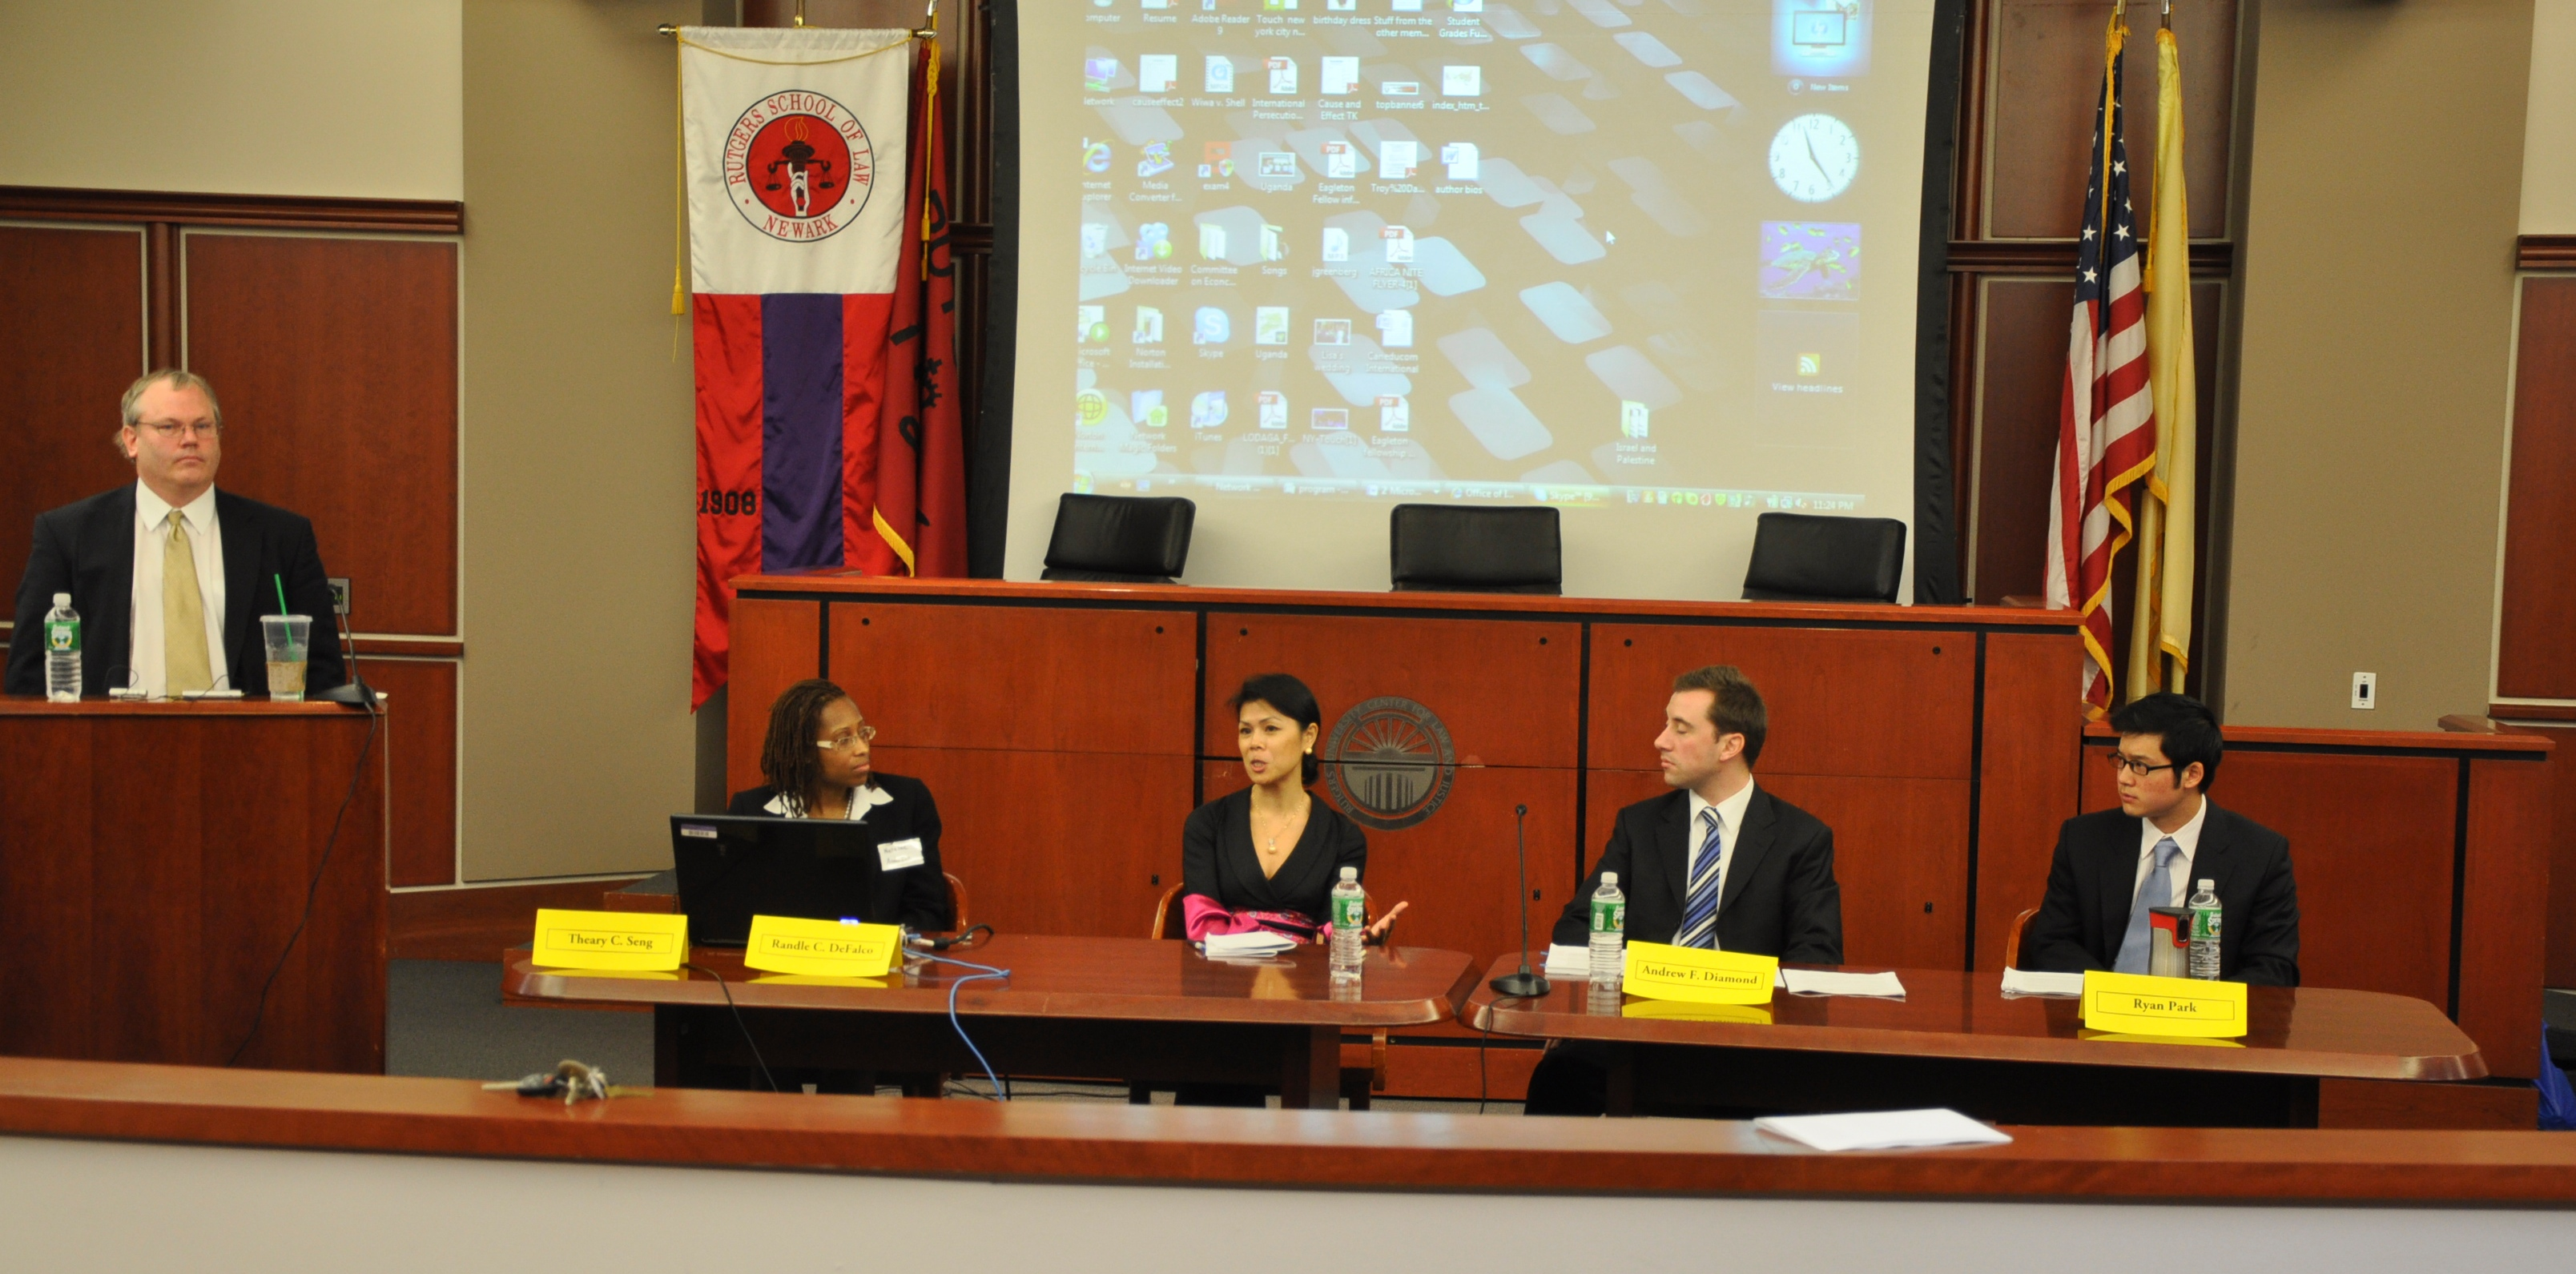 Theary Seng joining the Panelists after her opening remarks, moderated by Prof. Alex Hinton, Rutgers School of Law, 2 April 2010